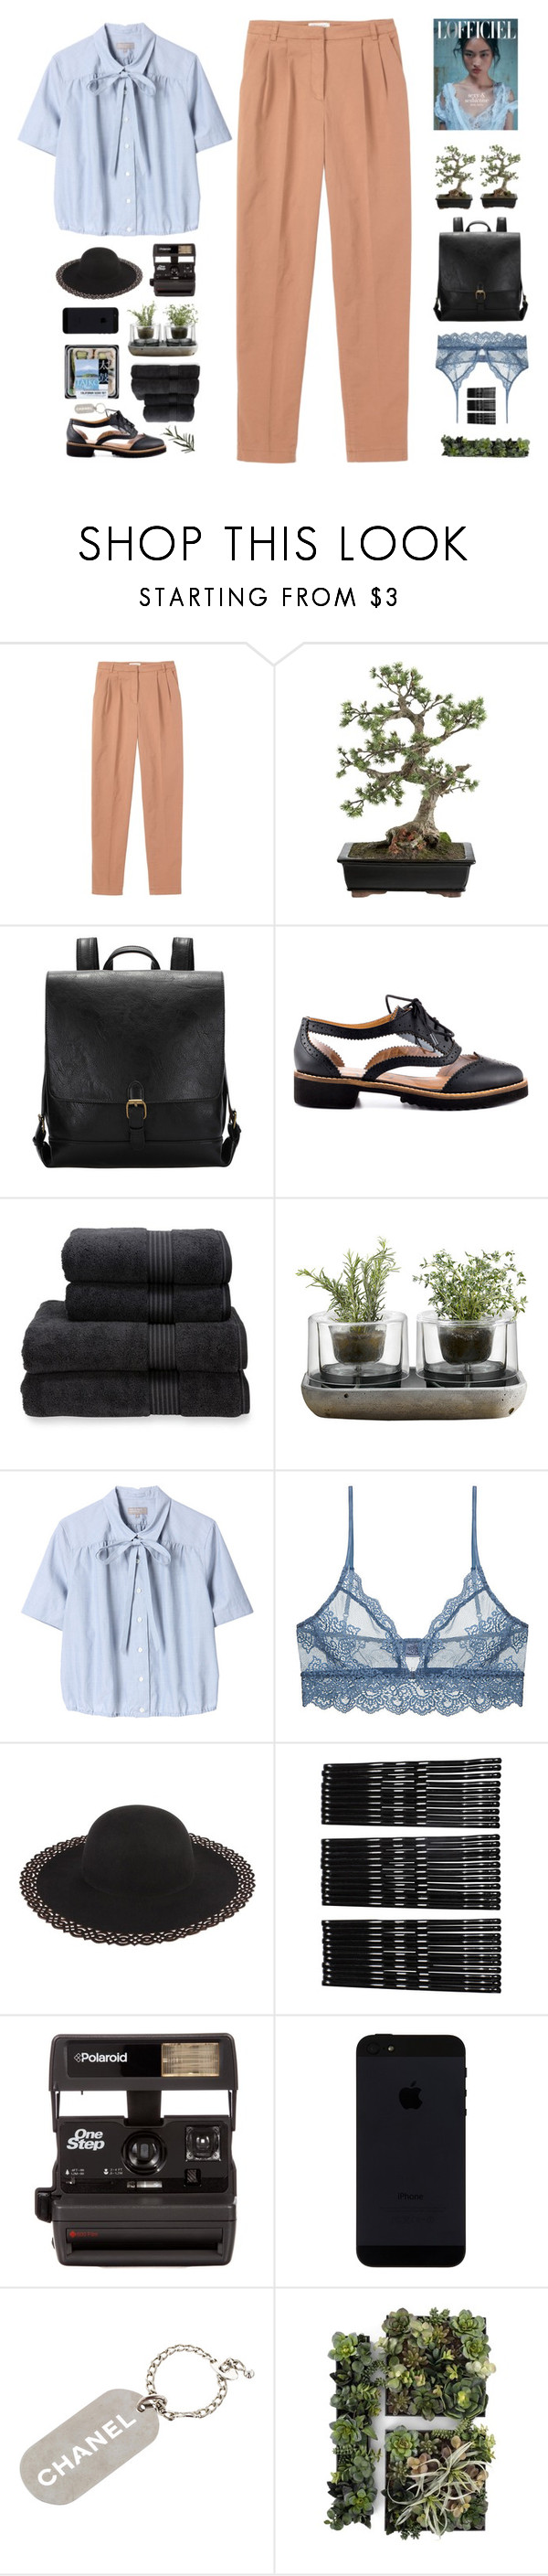 """"""" Would you love me if I'm guilty? """" by centurythe ❤ liked on Polyvore featuring Toast, Crate and Barrel, Kelsi Dagger Brooklyn, Christy, Nude, Margaret Howell, Only Hearts, Monki, Polaroid and Chanel"""